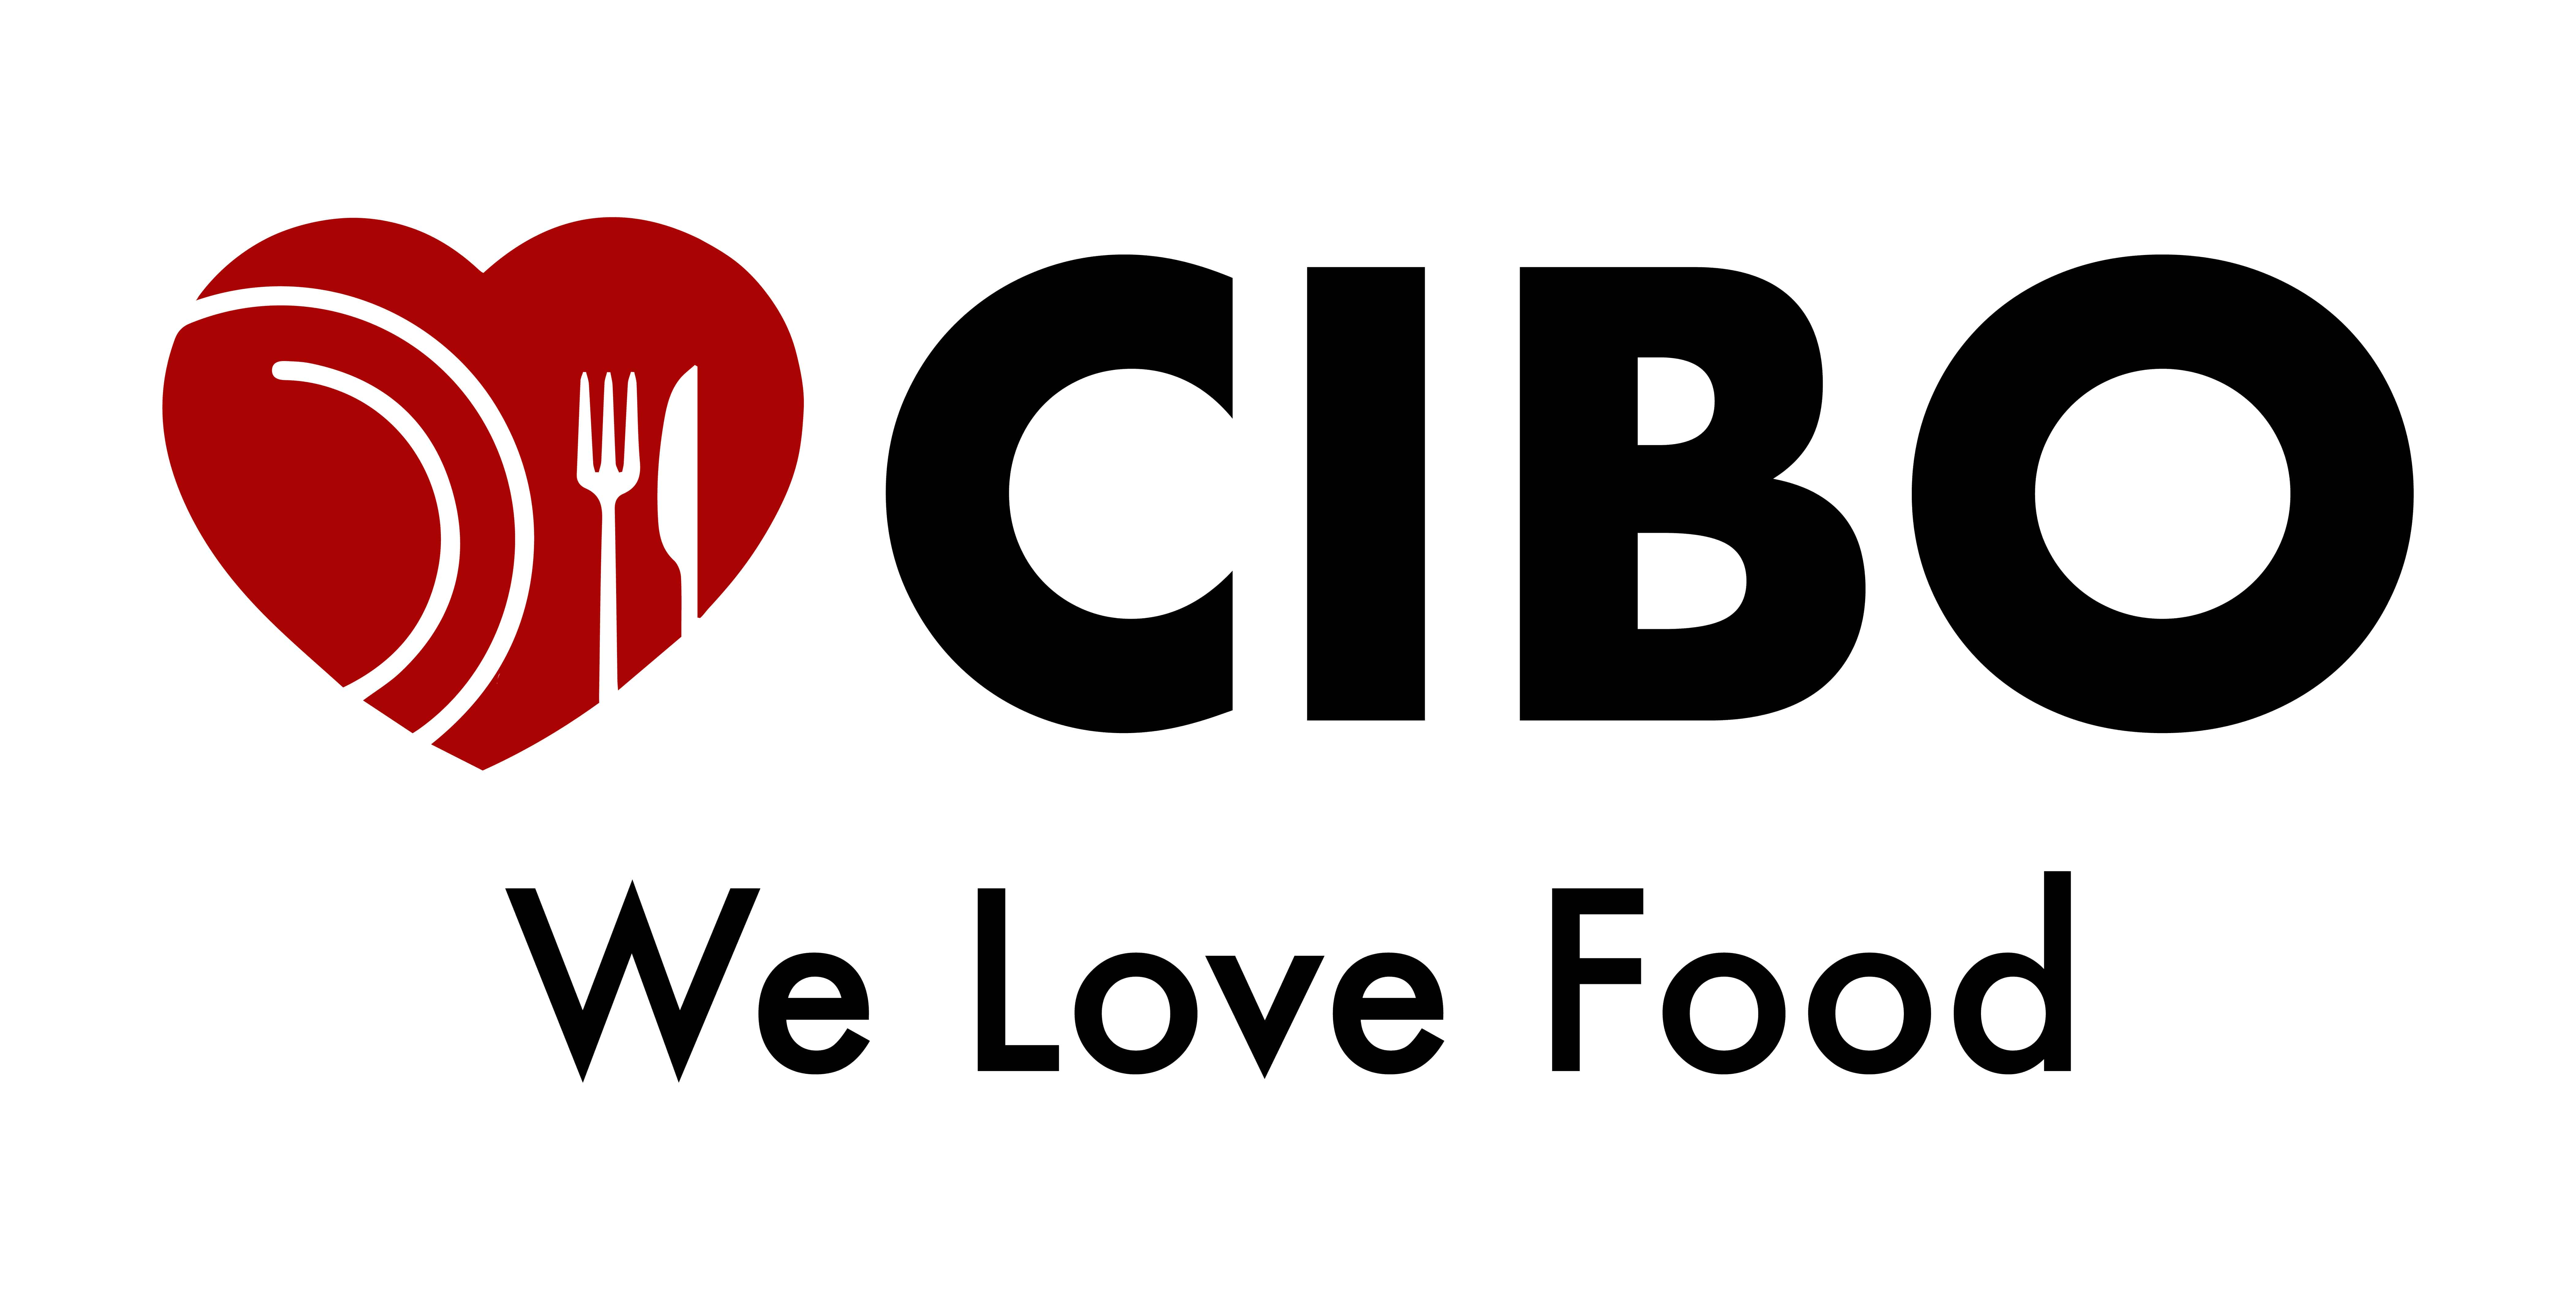 HeartCibo Mobile Event Caterer & Takeaway | Give Your Tastebuds a Treat